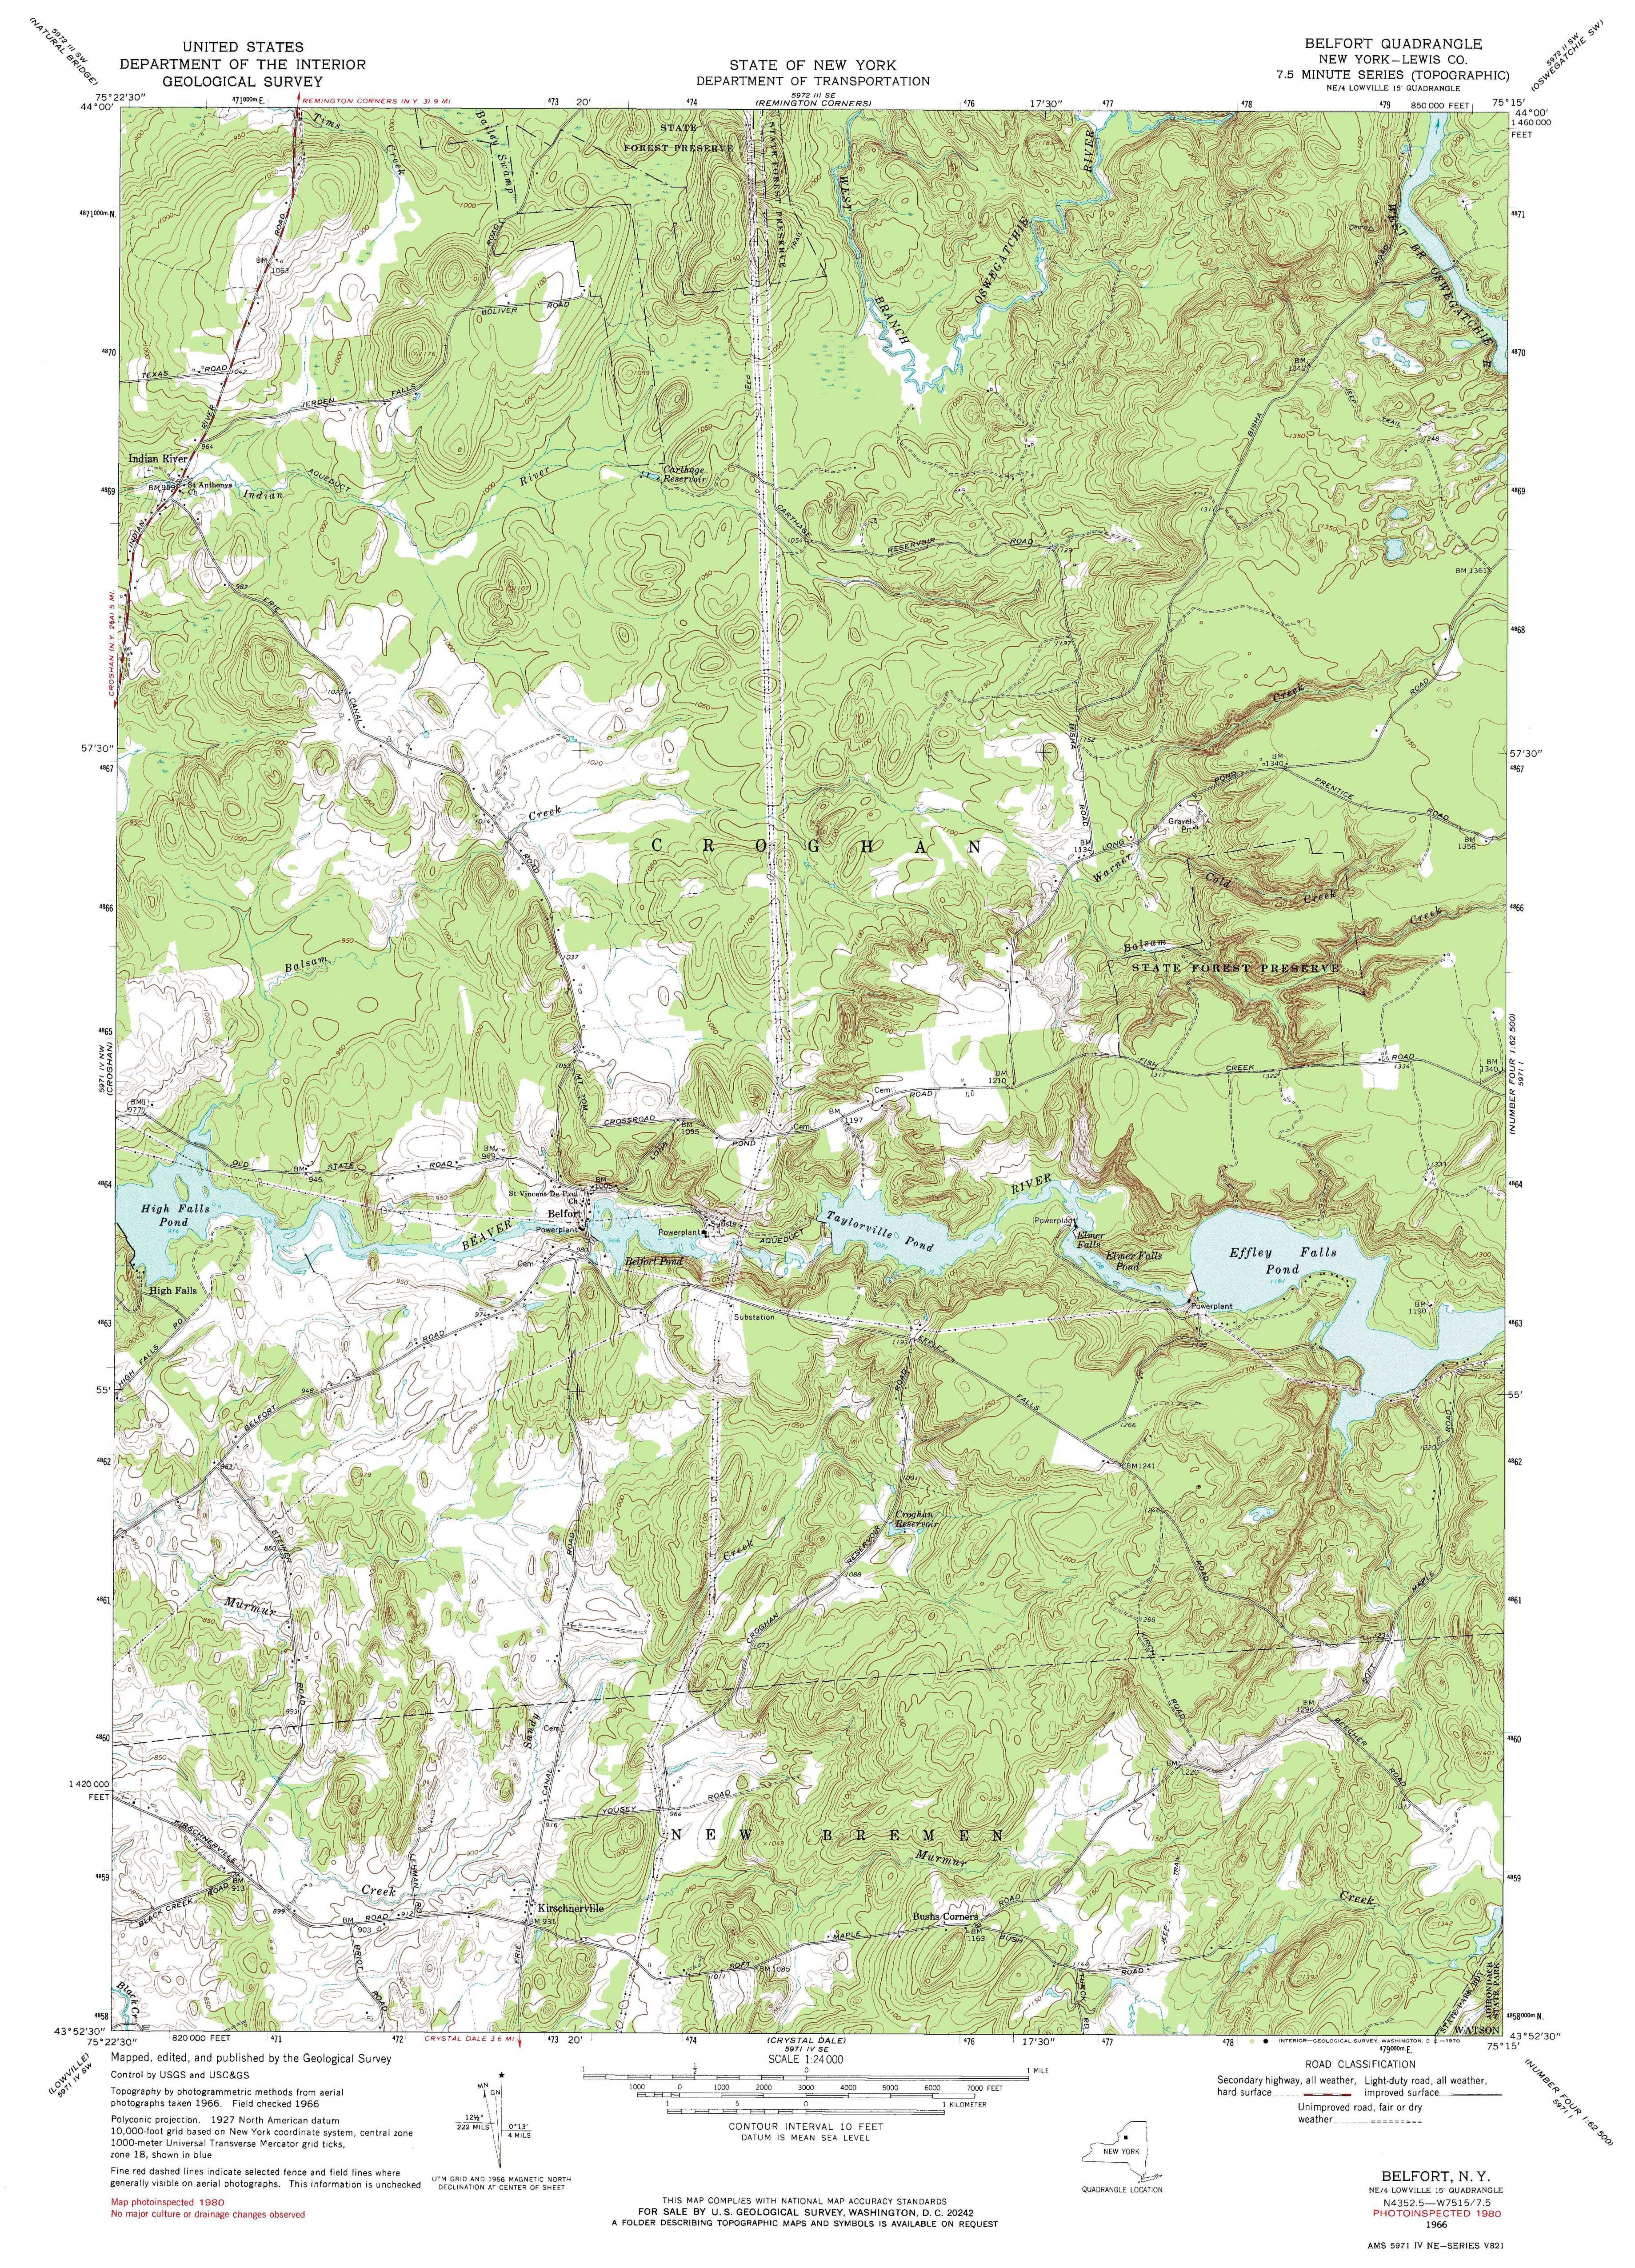 Topographic Map Usgs.New York Topo Maps 7 5 Minute Topographic Maps 1 24 000 Scale